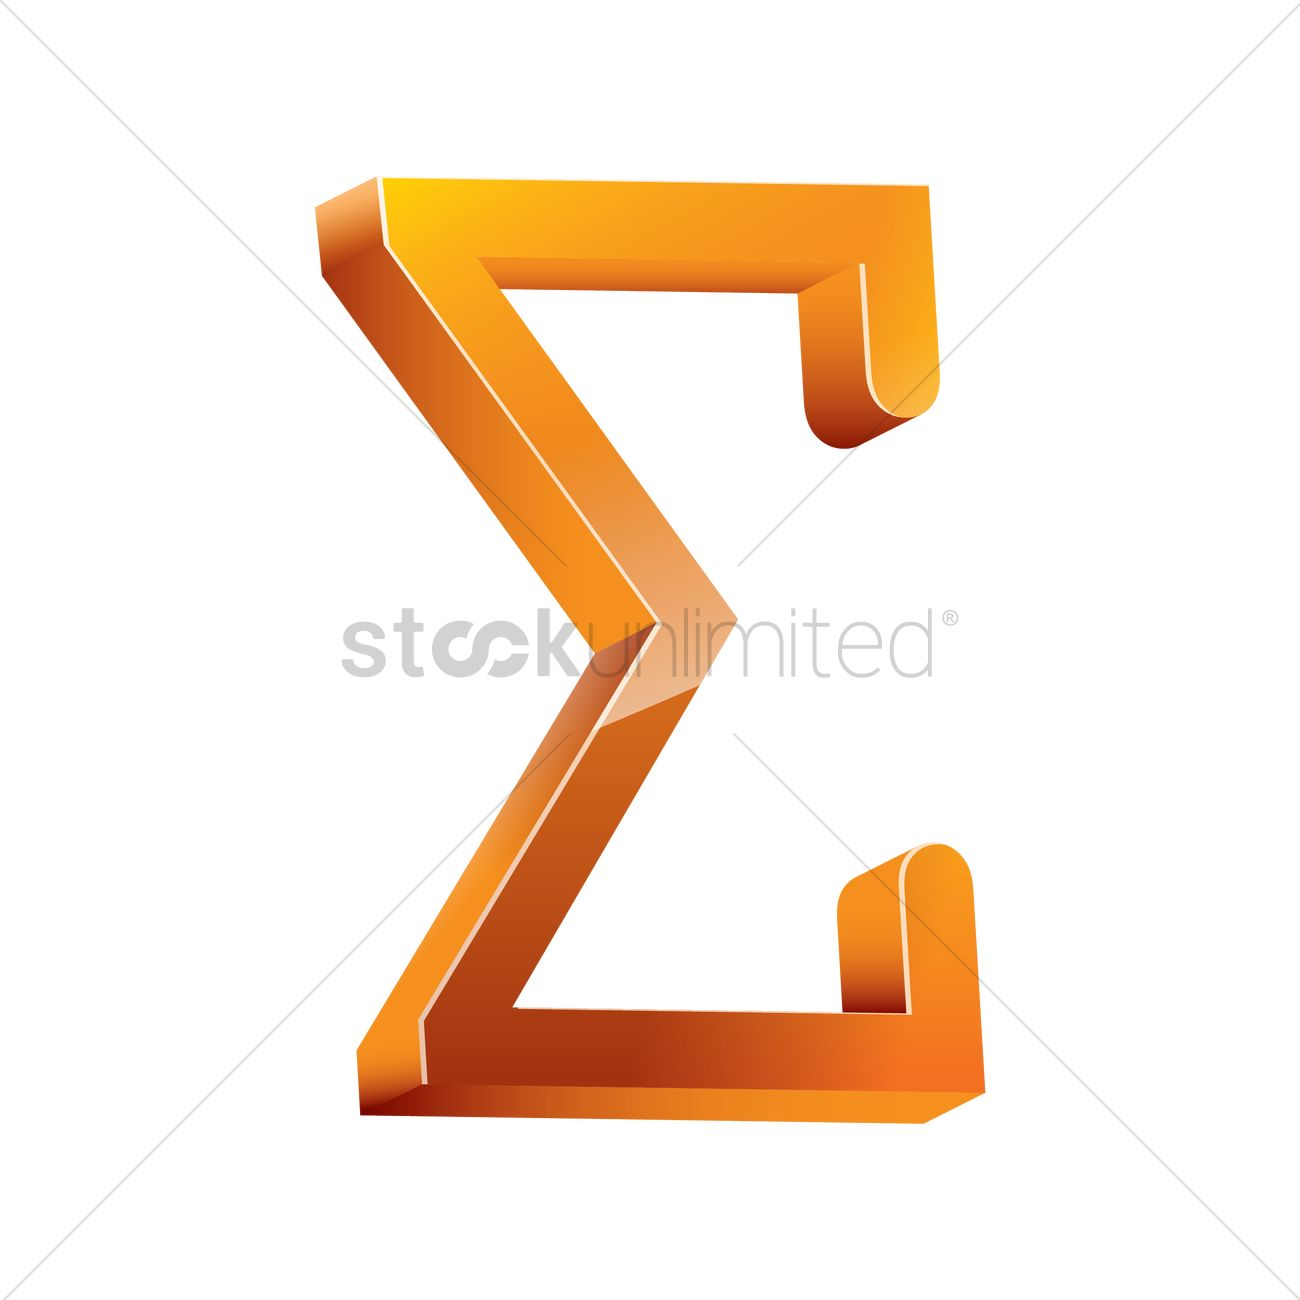 Image Result For Math Pi Symbol